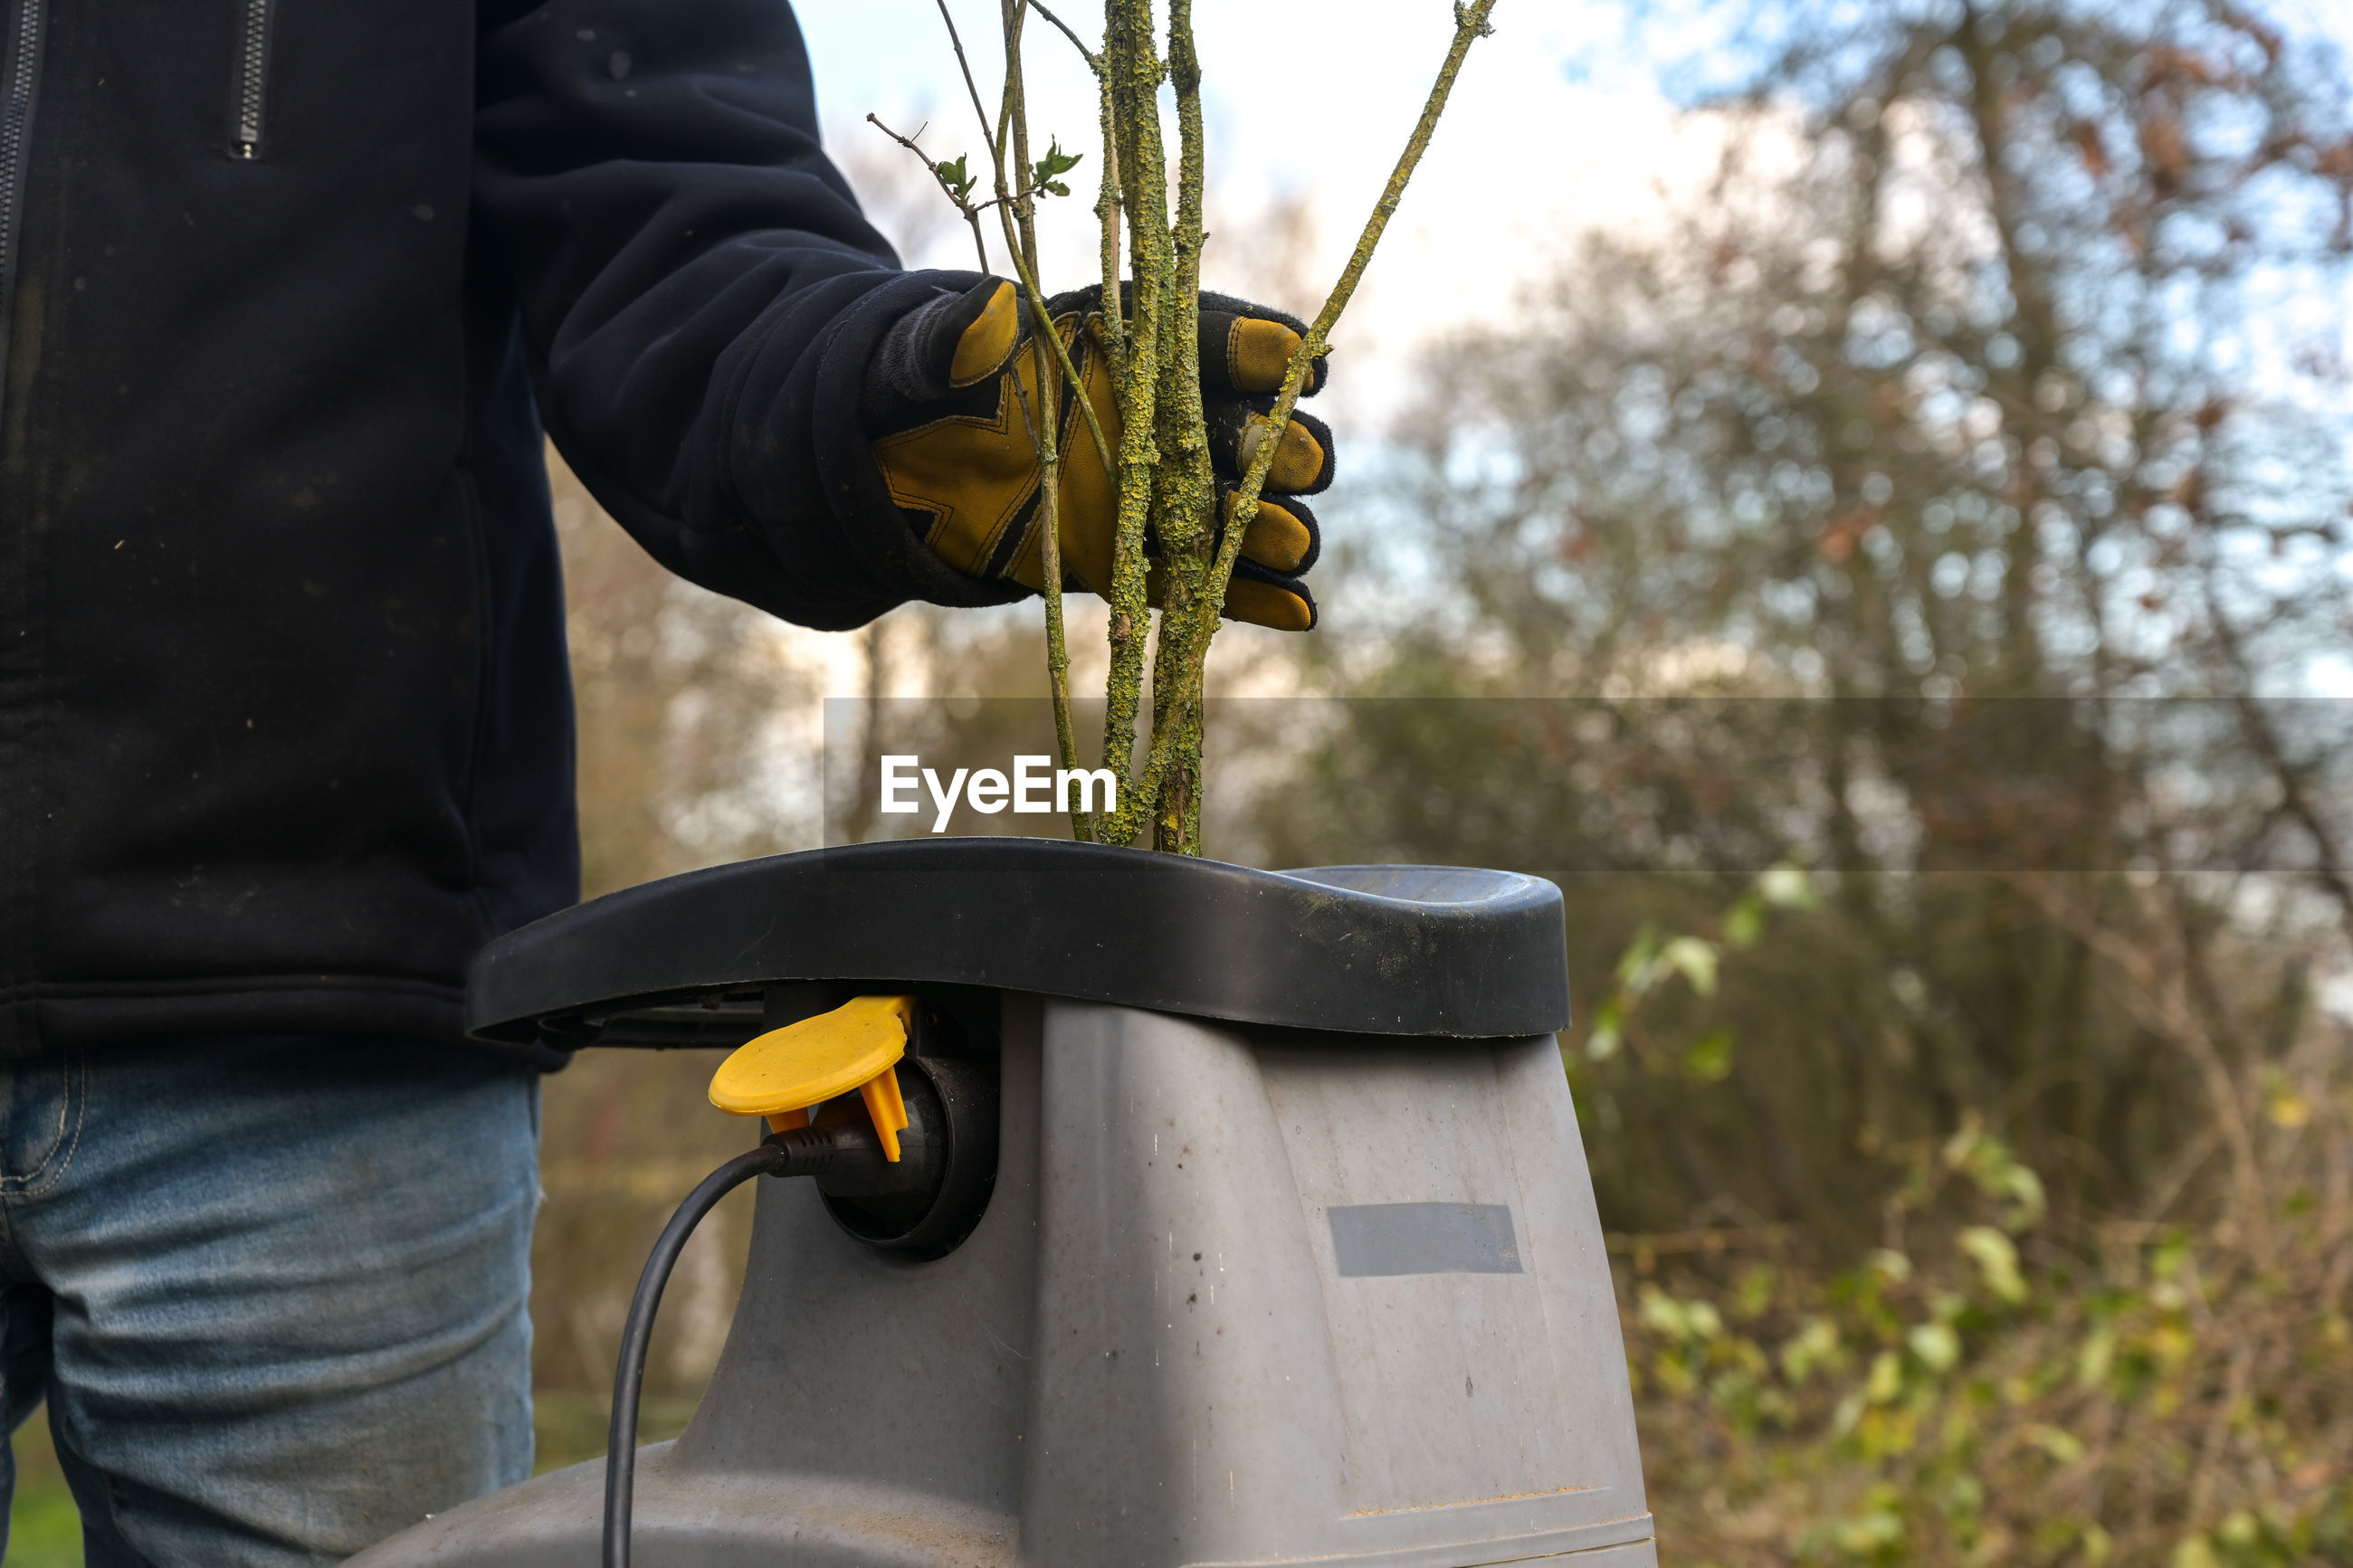 Midsection of man putting plants in machinery outdoors